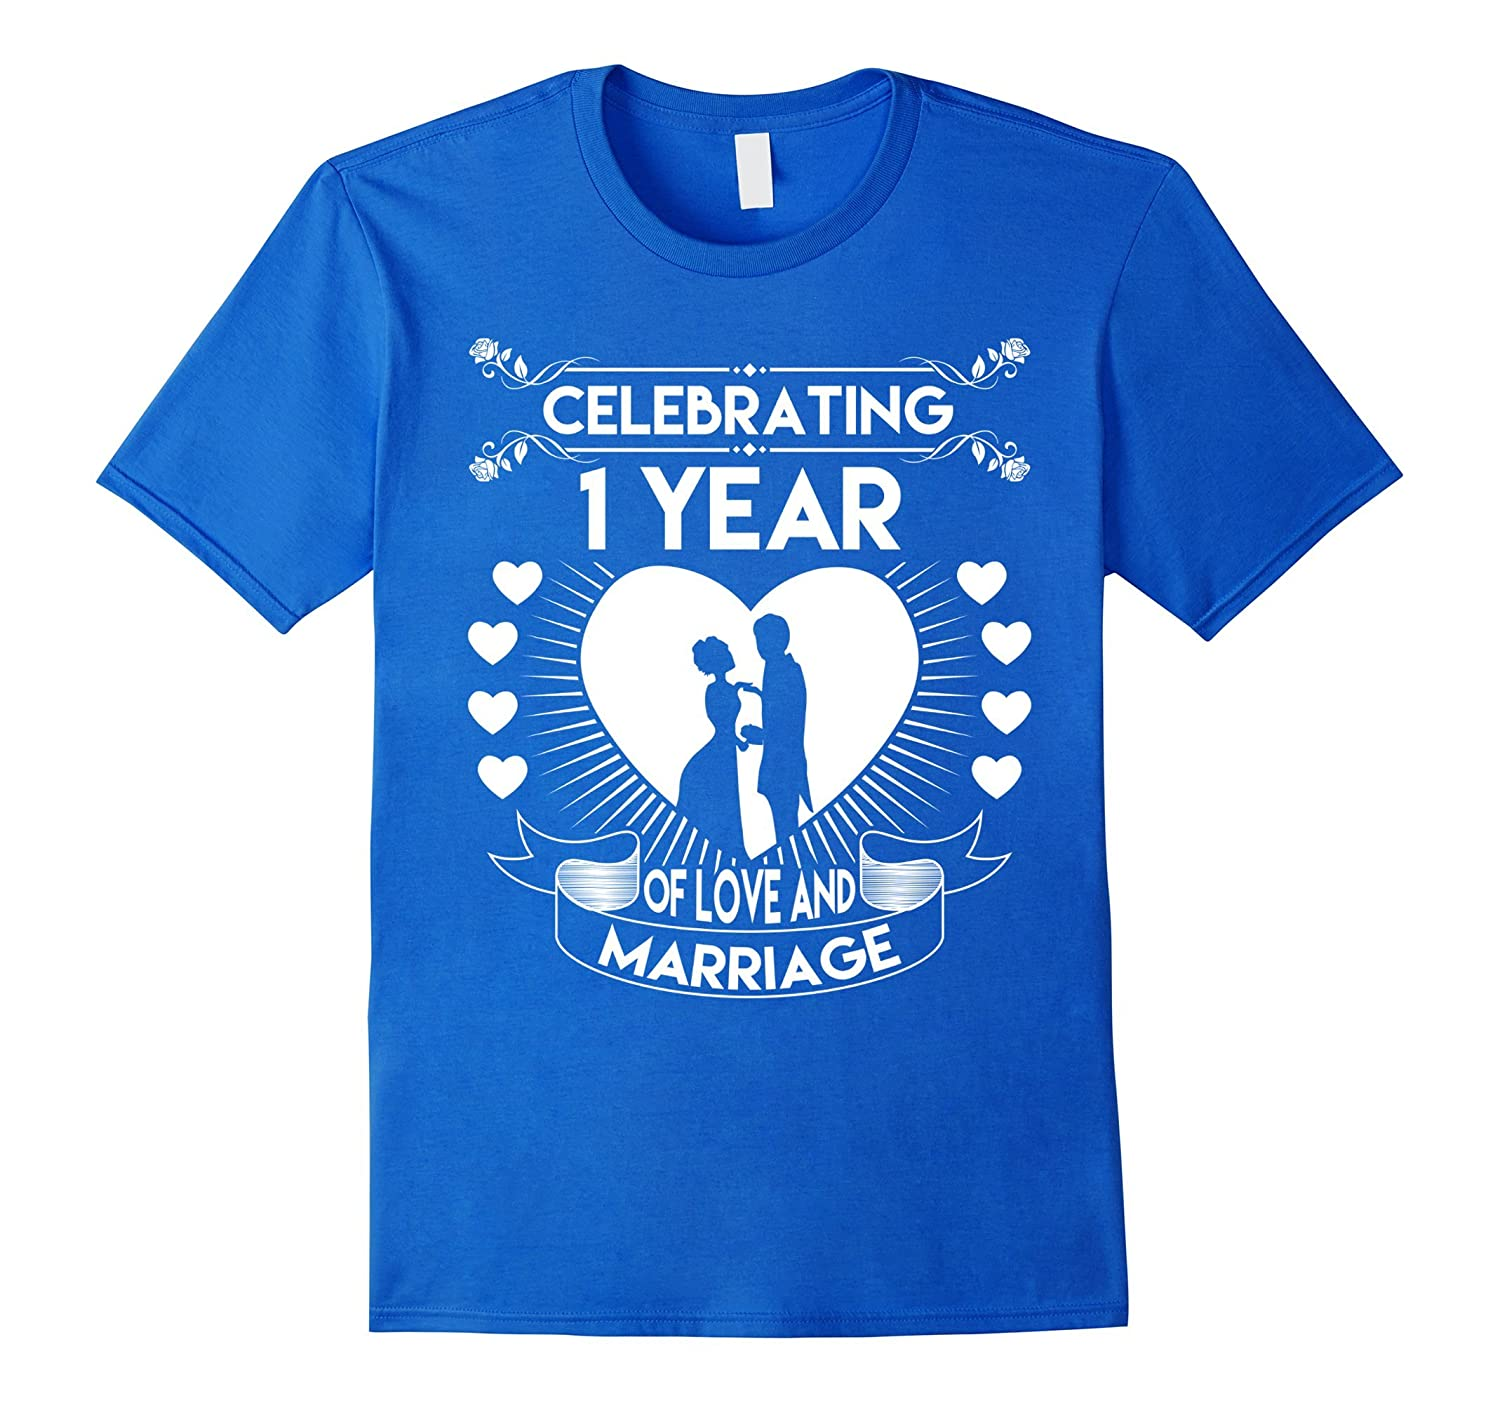 Year st wedding anniversary gifts and ideas couple t